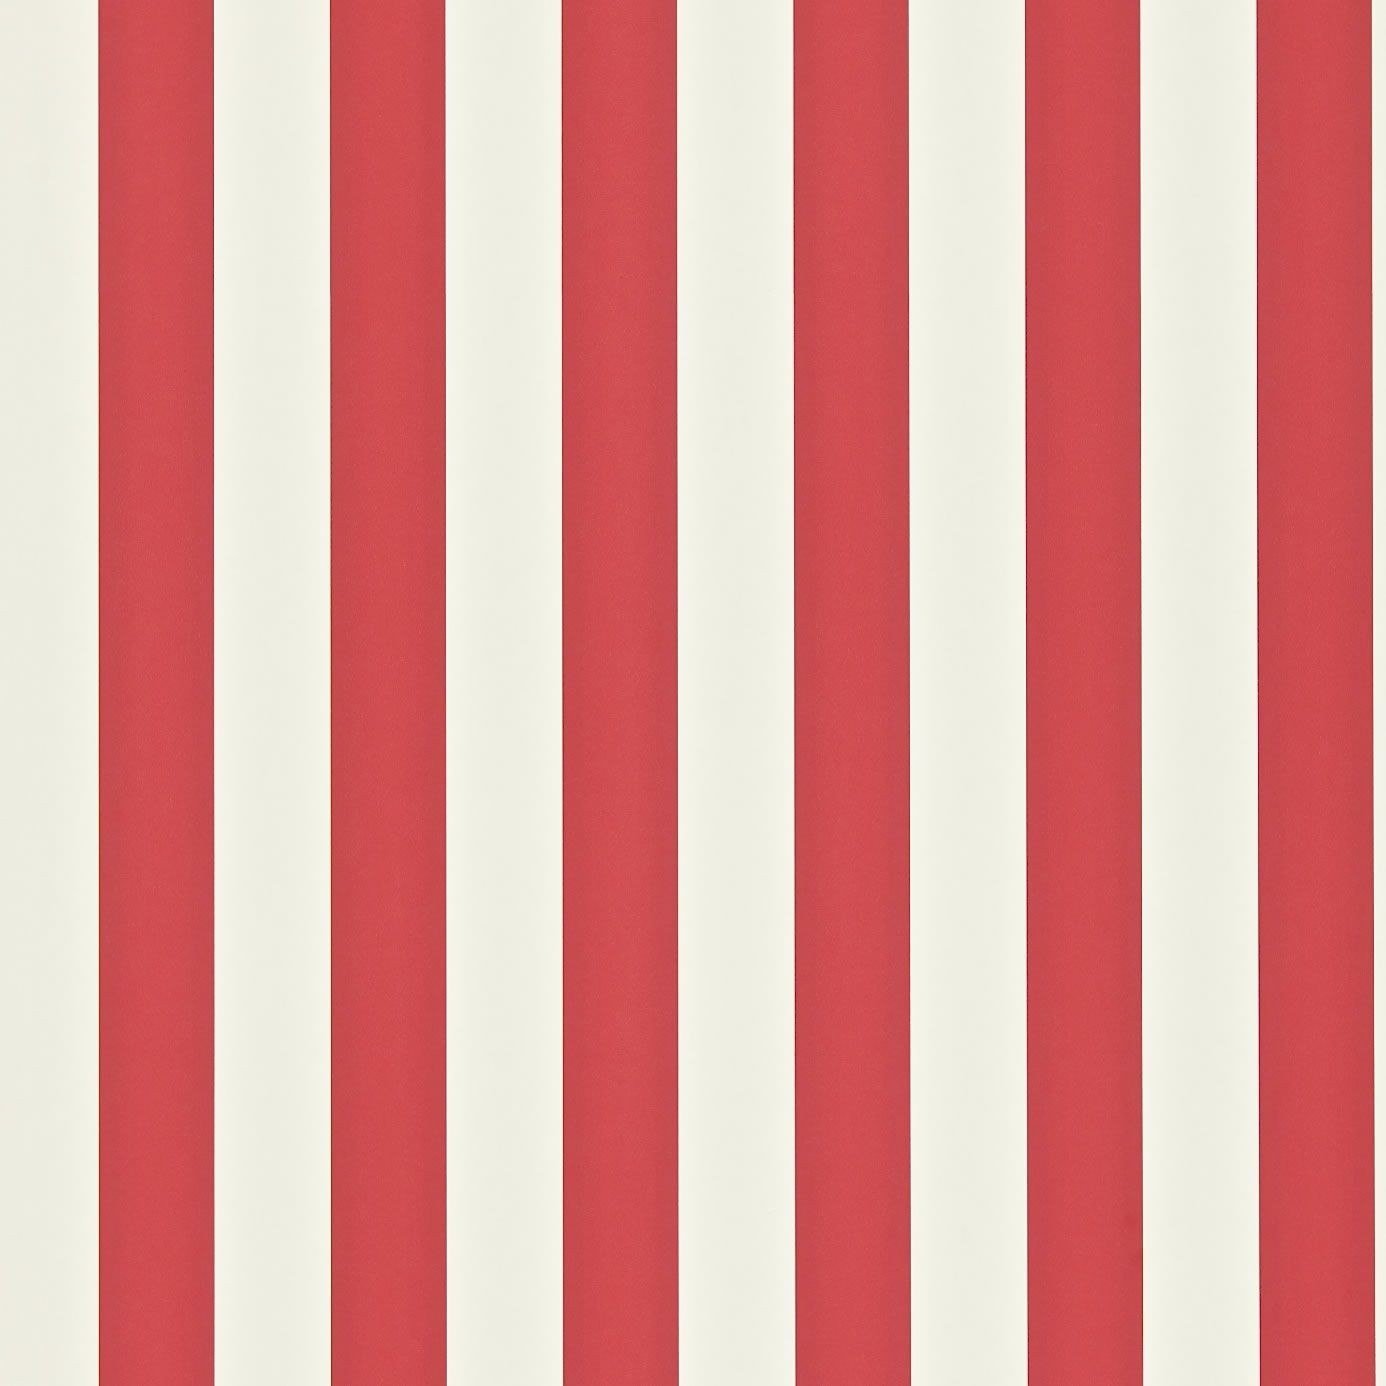 Red Stripe Wallpaper